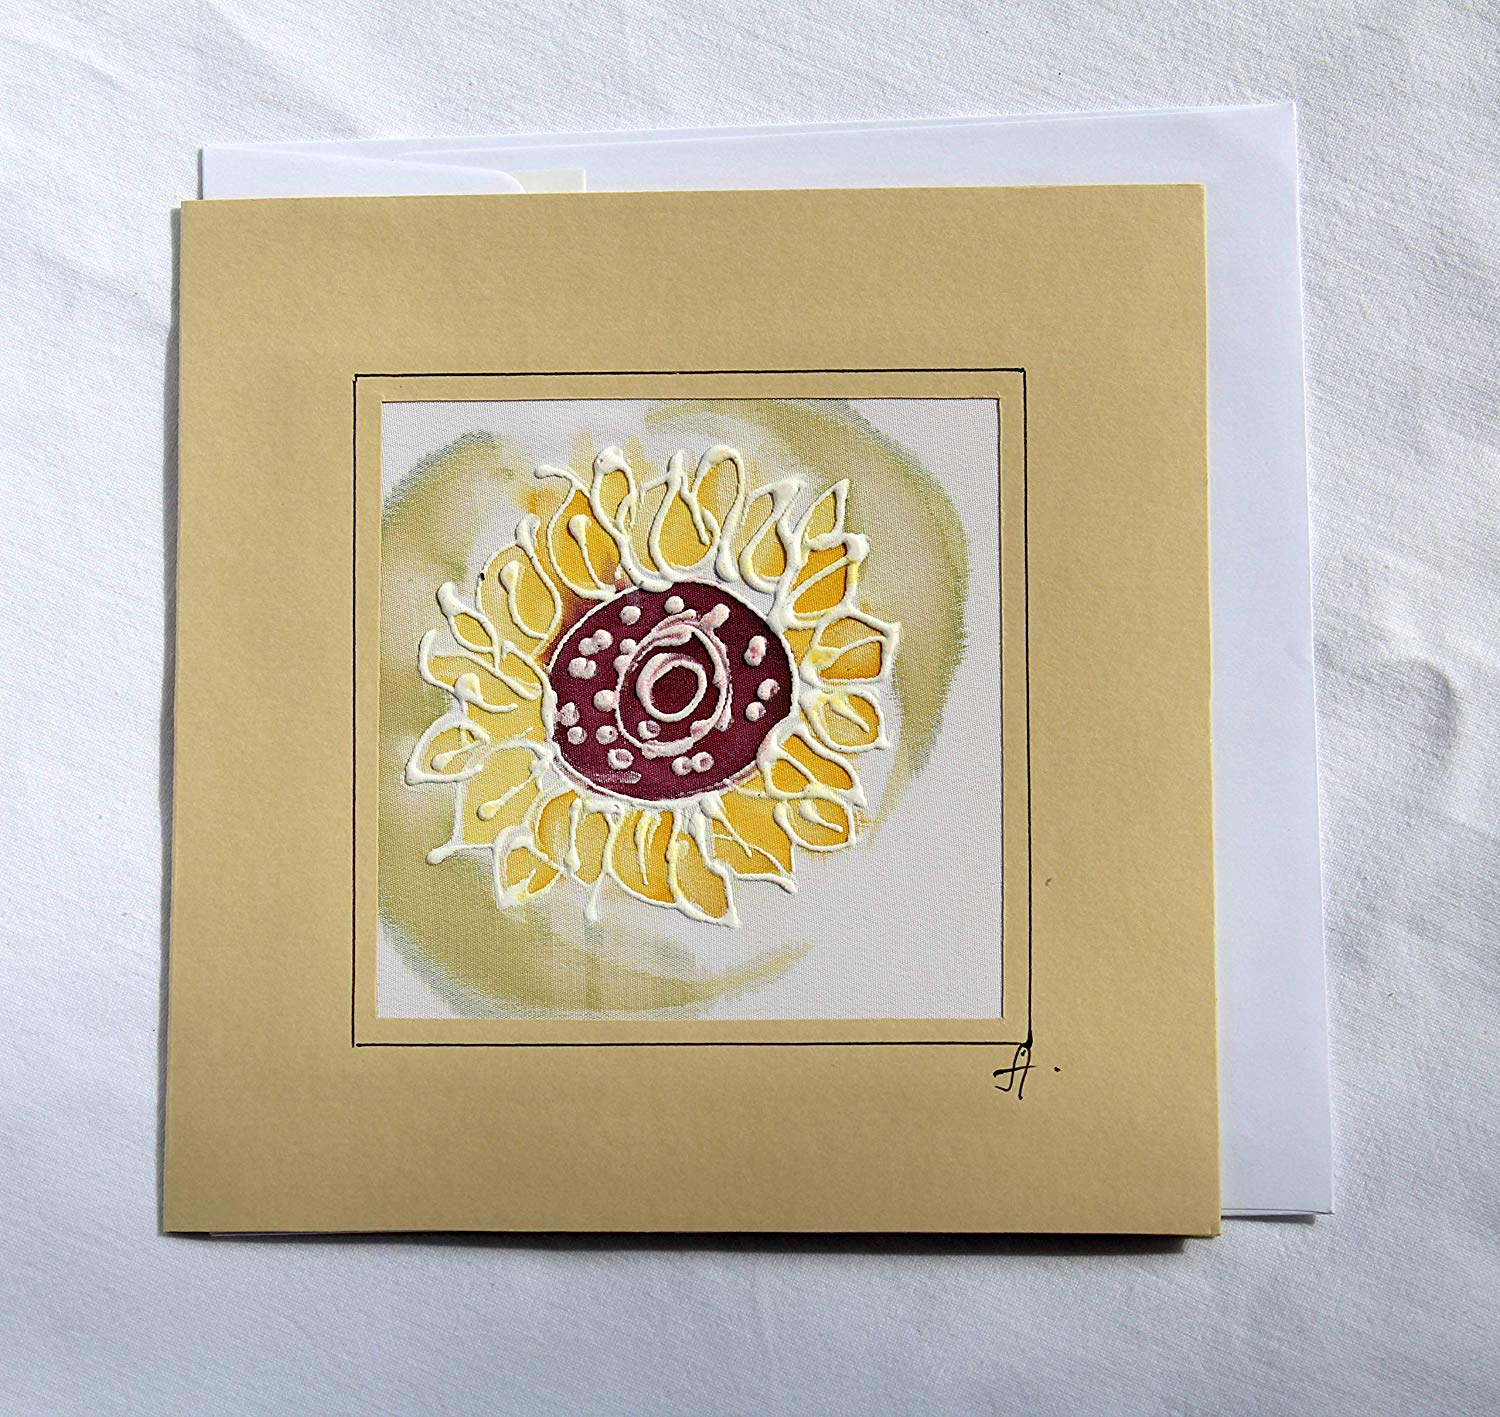 Sale!!!20% Off,Original Yellow Sunflower Card,Sunflower Birthday card,Mother's day card,Hand Painted Sunflower Silk Card,Flower Card,Sunflower Greeting Cards,Original Batik Greeting Card.